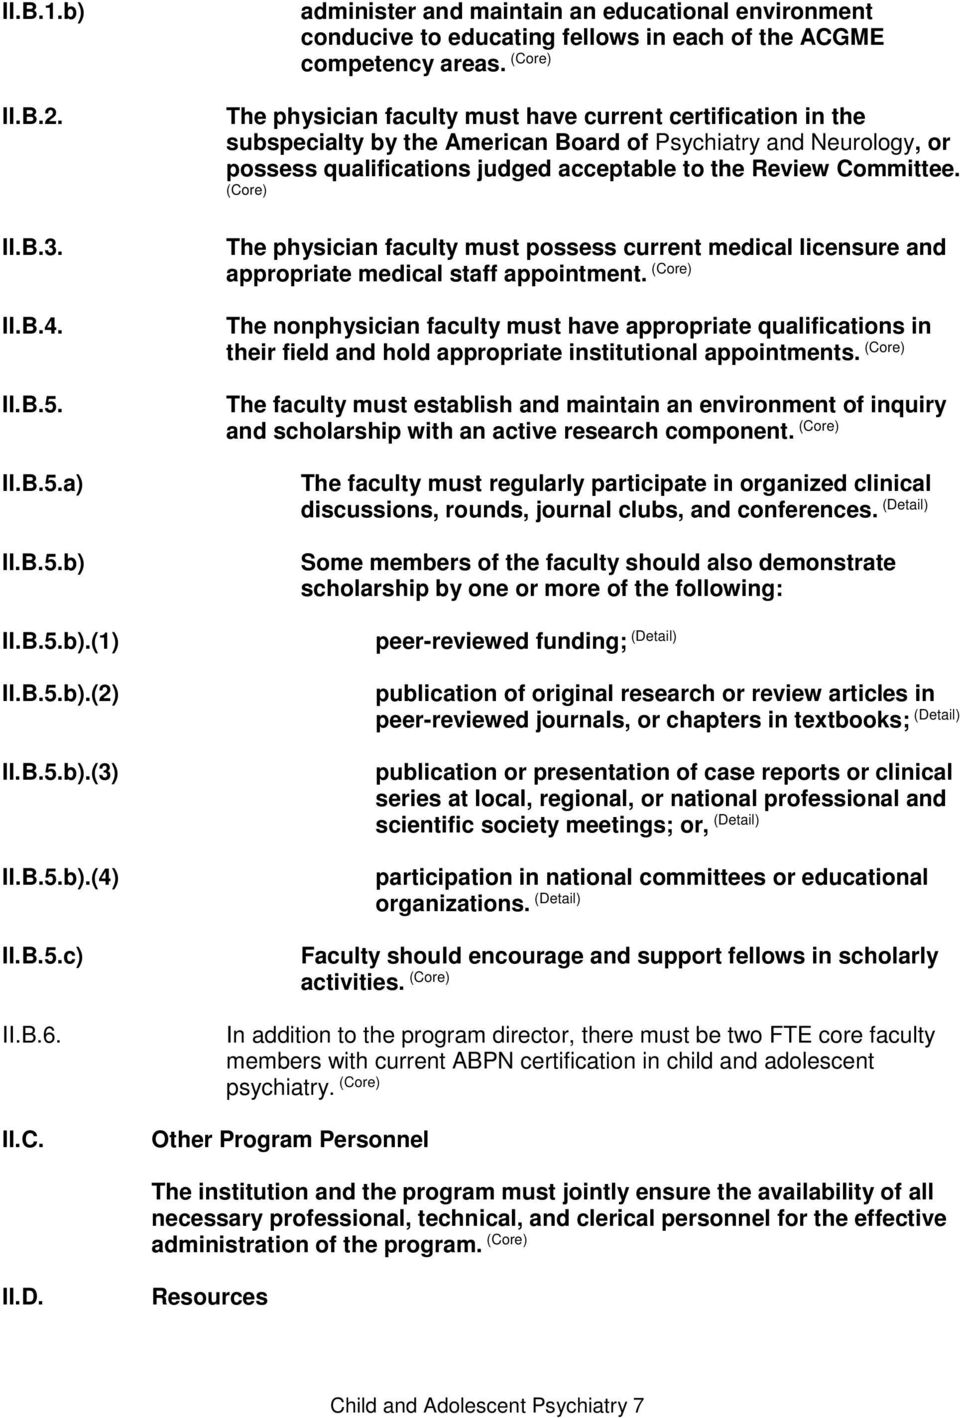 (Core) The physician faculty must have current certification in the subspecialty by the American Board of Psychiatry and Neurology, or possess qualifications judged acceptable to the Review Committee.